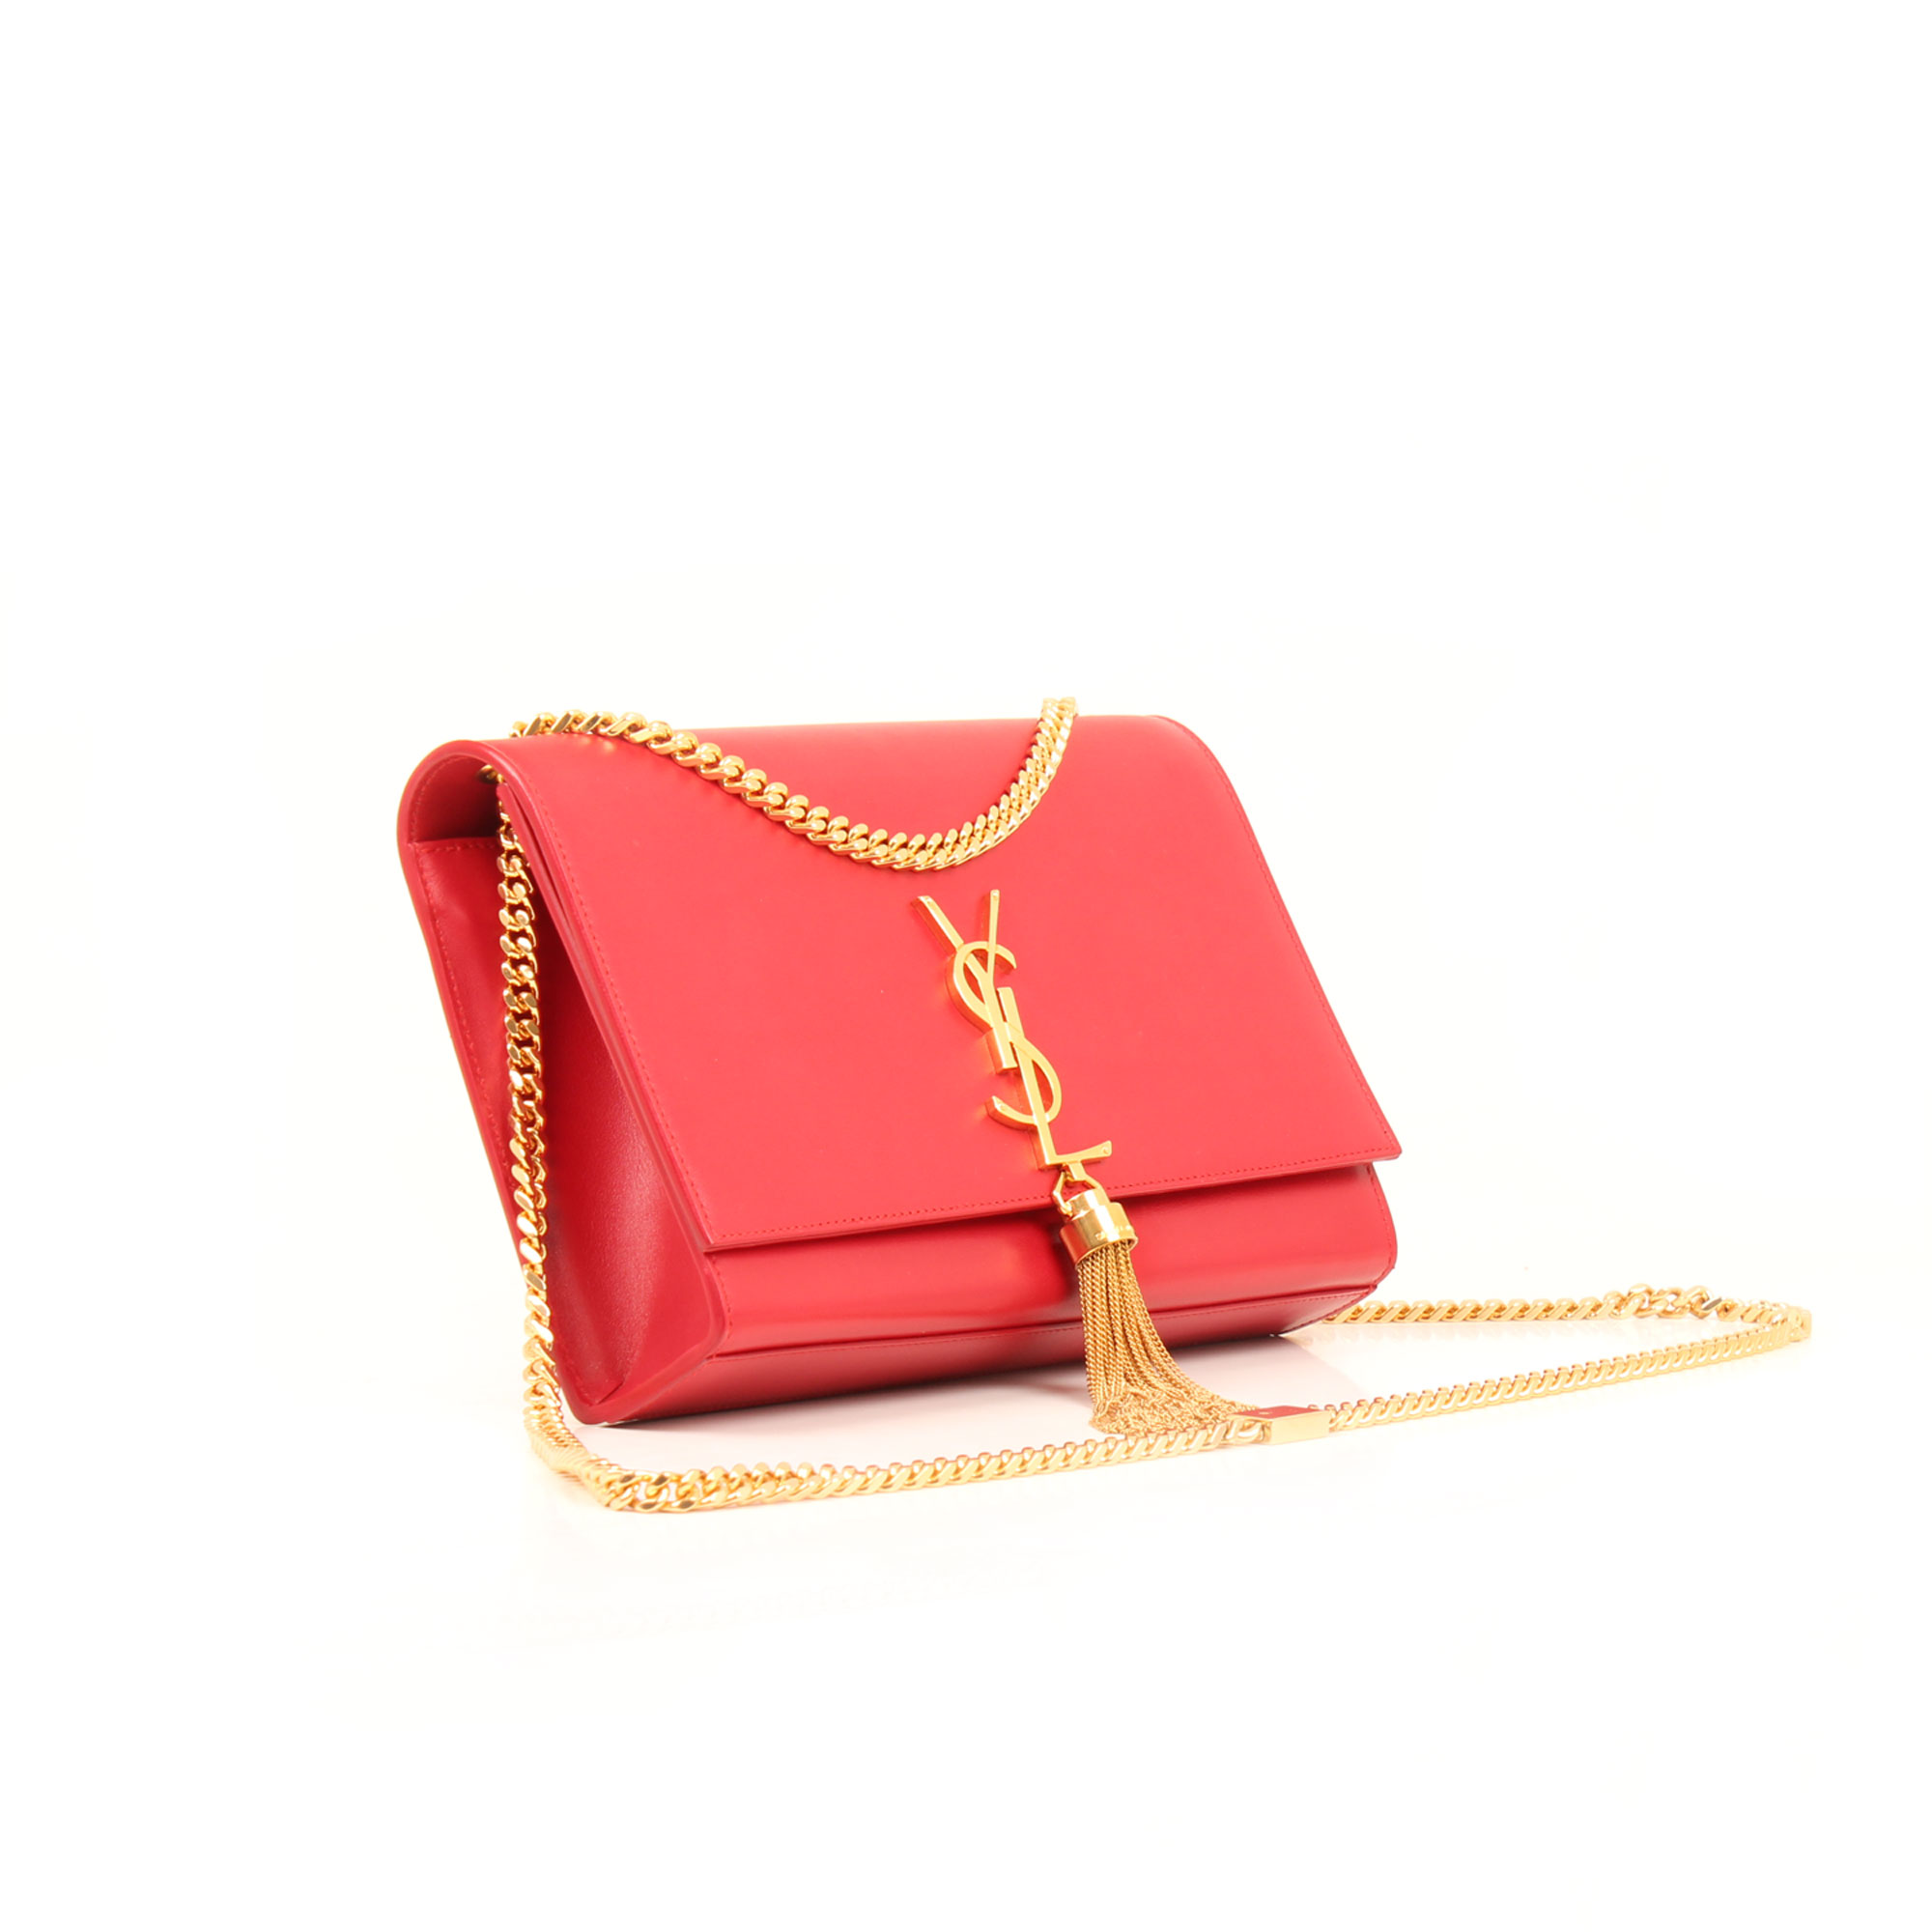 General image of ysl kate medium bag red calfskin leather